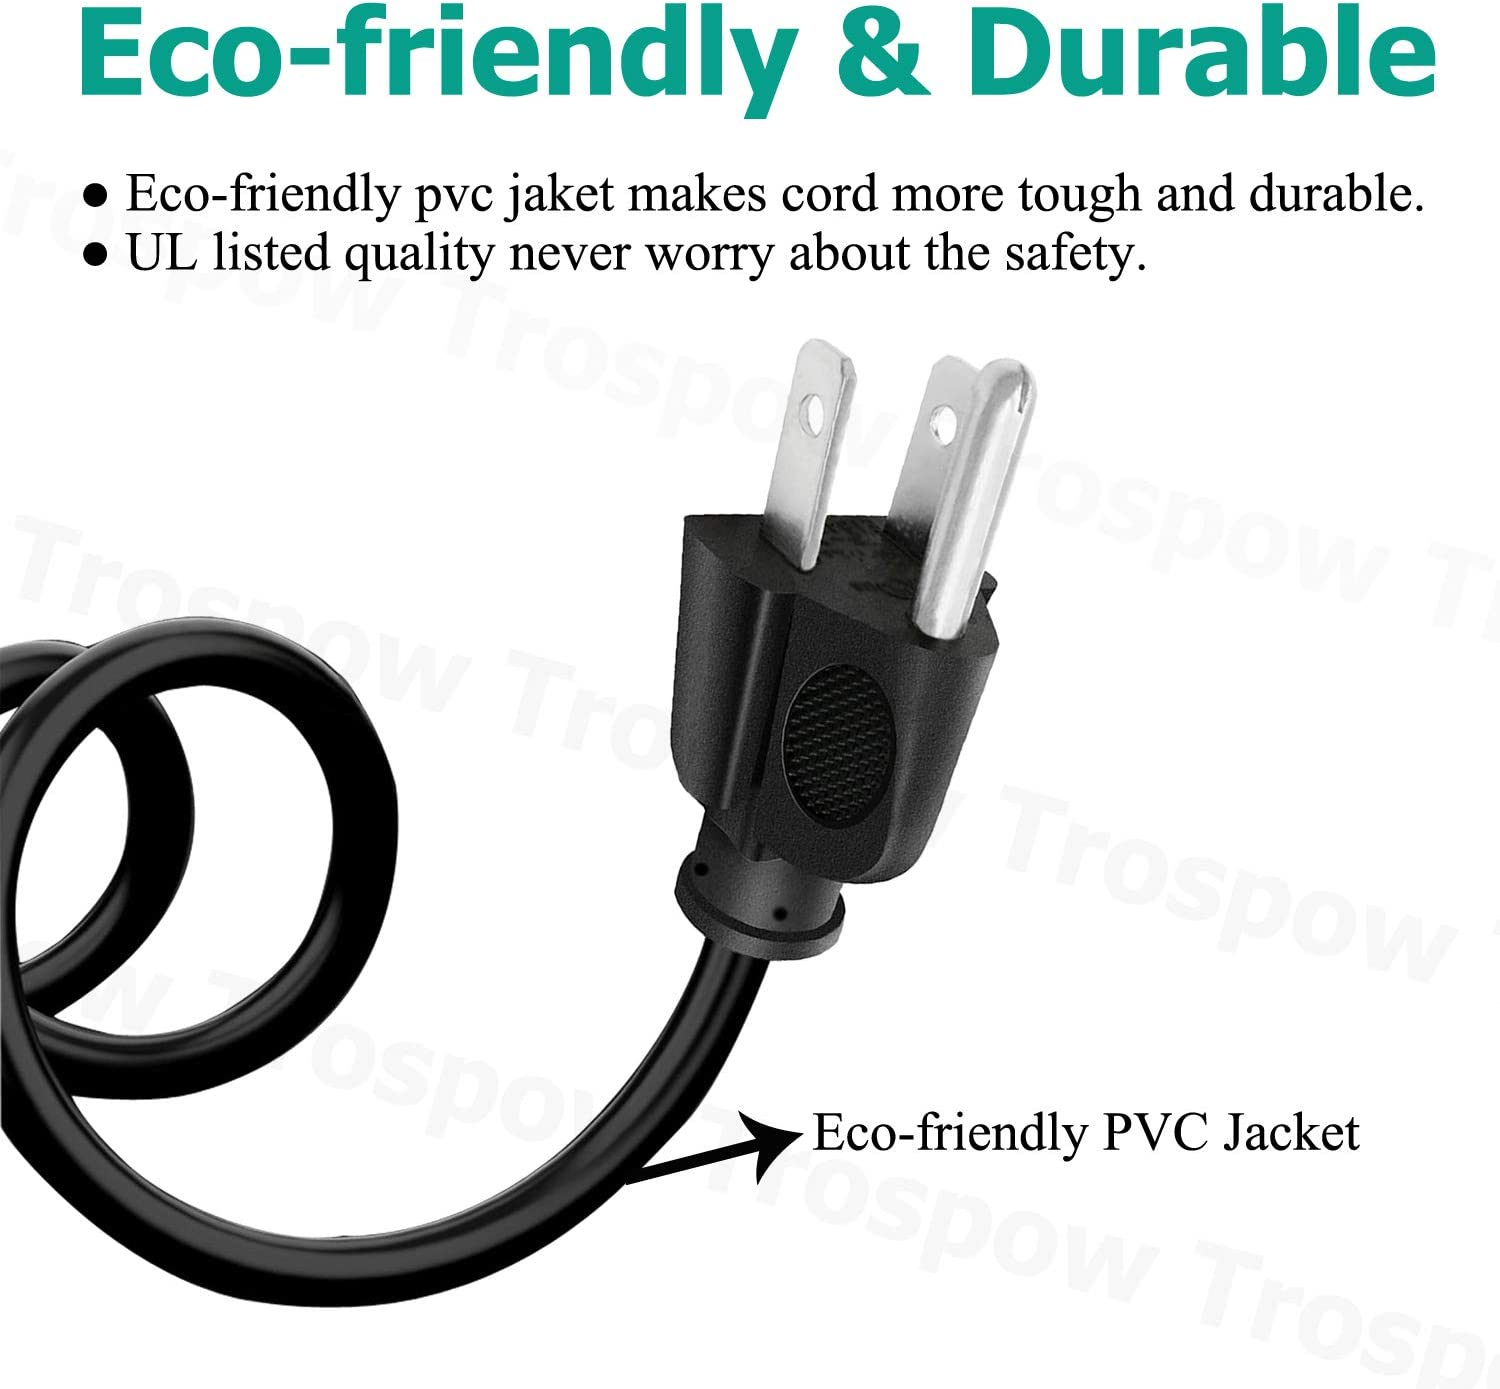 UL Listed 8.2ft 3 Prong Power Cord for HP Laserjet Pro M29w M130nw M203dw M426fdw M15a M454dw M428fdw M281fdw Printer,Behringer X AIR XR18 XR12 XR16 Digital Mixer Power Cord AC Cable Replacement